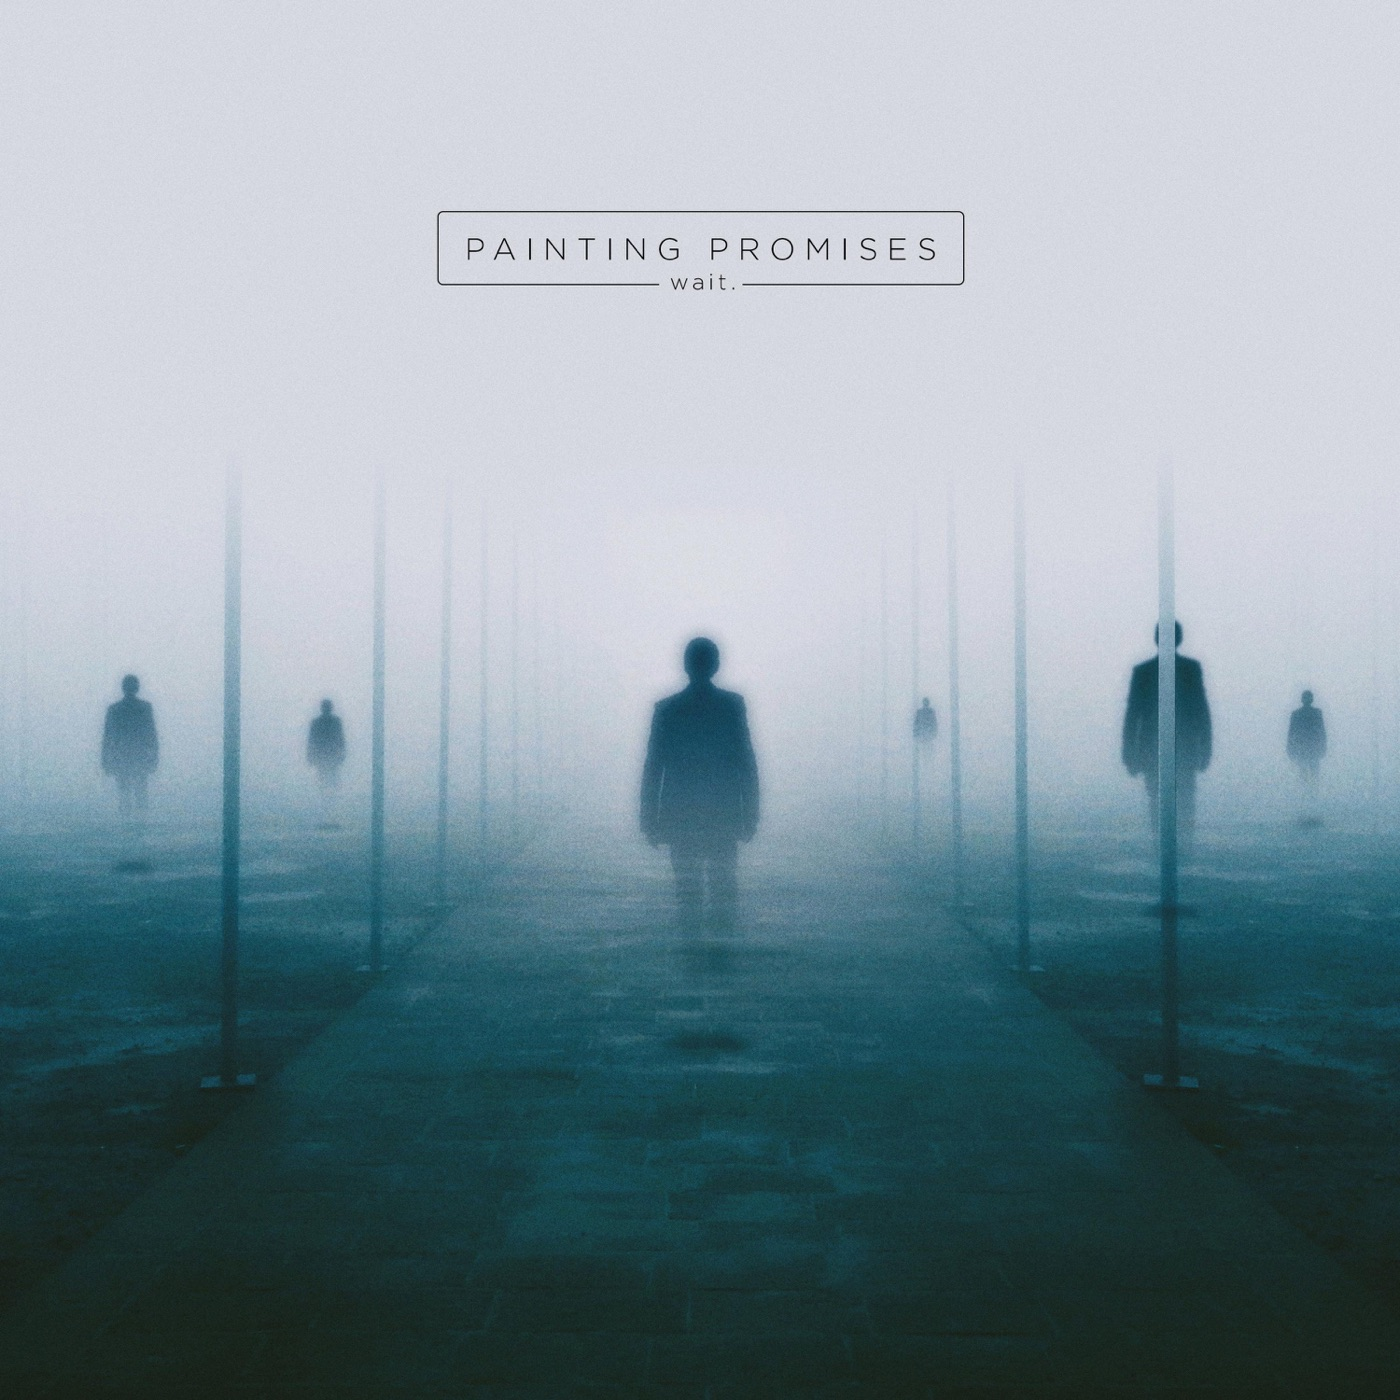 Painting Promises - Wait. [single] (2020)